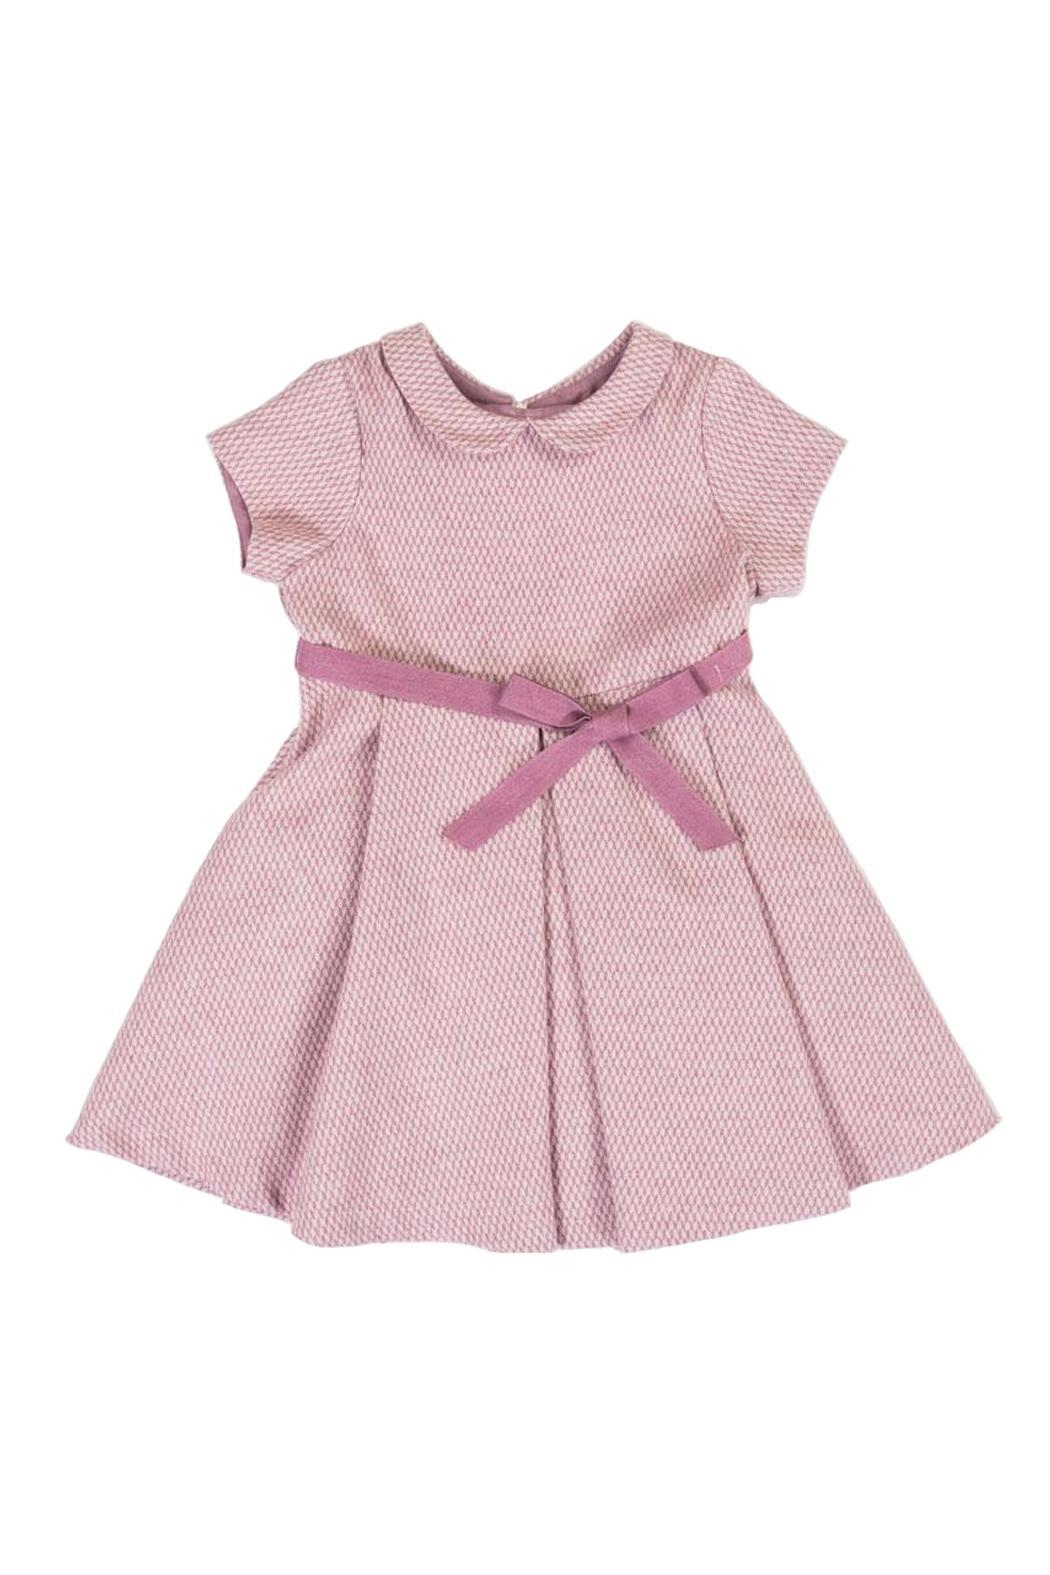 Malvi & Co. Pink Pleat Dress. - Main Image